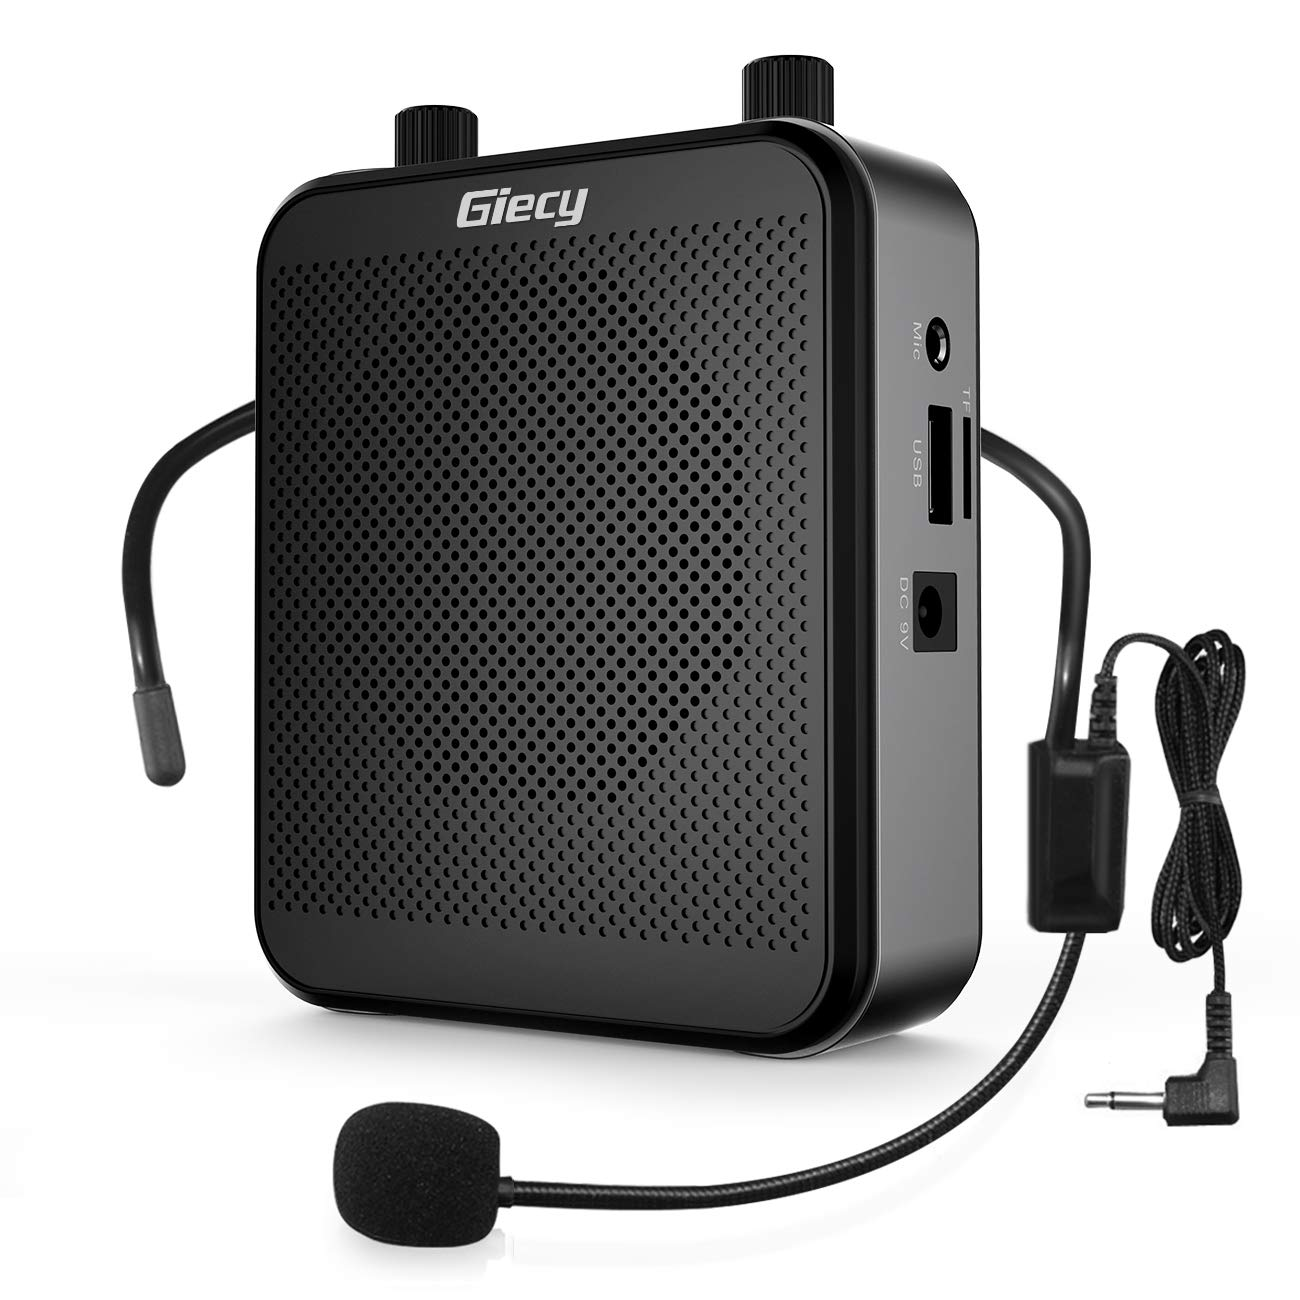 Giecy Voice Amplifier Portable Bluetooth 30W 2800mAh Rechargeable PA System Speaker for Multiple Locations Such as Classroom, Meetings and Outdoors by Giecy